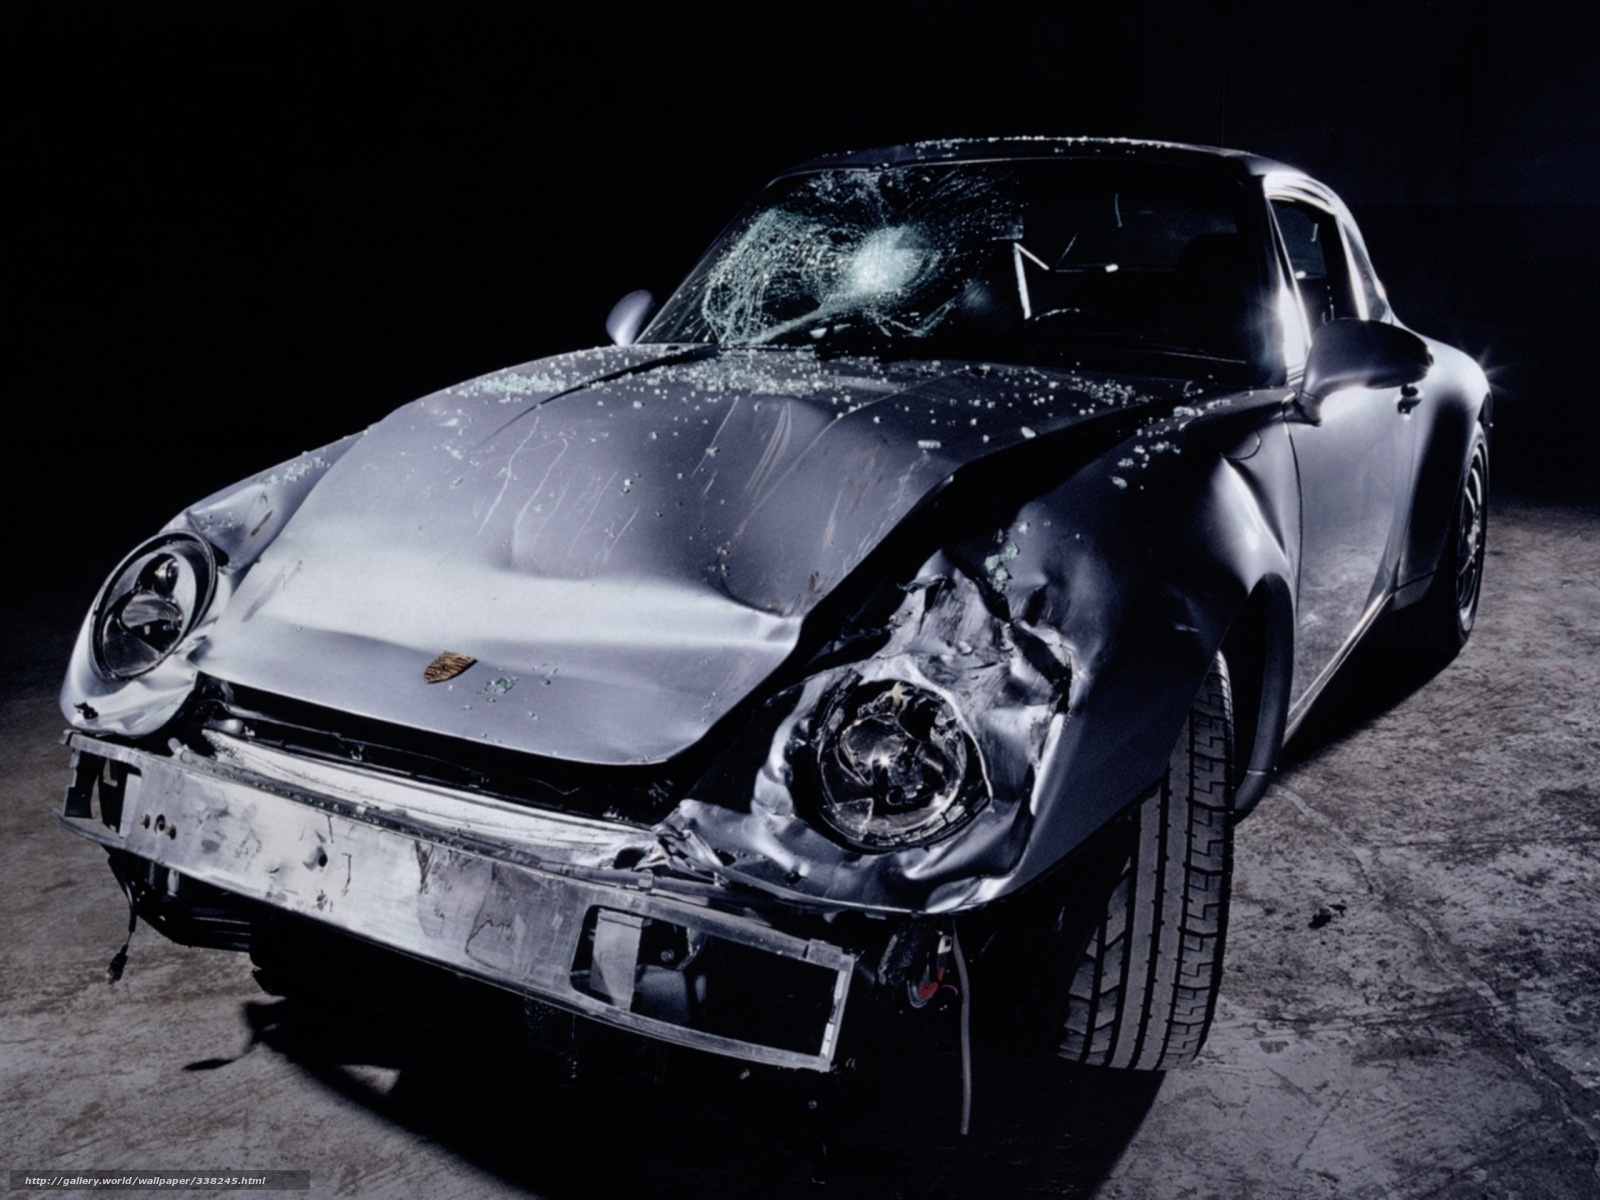 Download Wallpaper Car Crashed Porsche Cars Free Desktop Wallpaper In The Resolution 1600x1200 Picture 338245